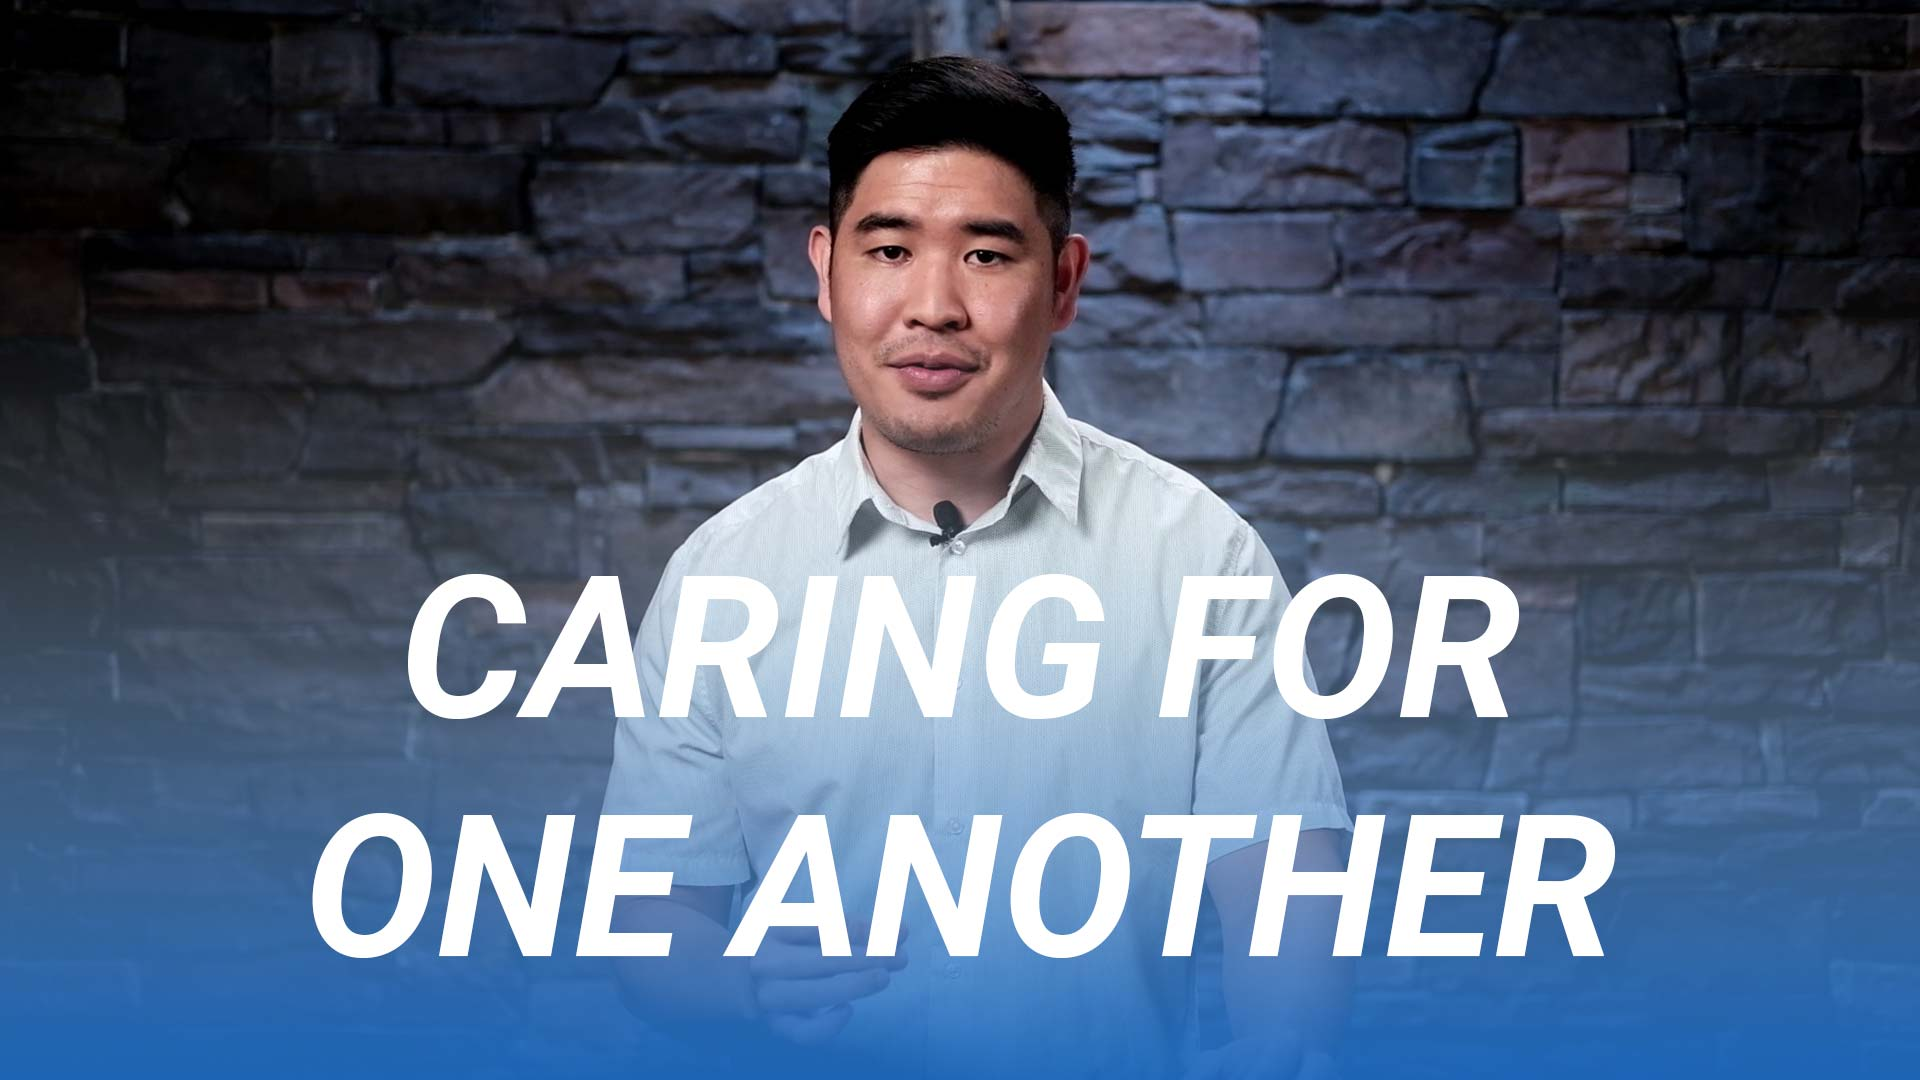 Caring for One Another (Philippians 2:19-30)